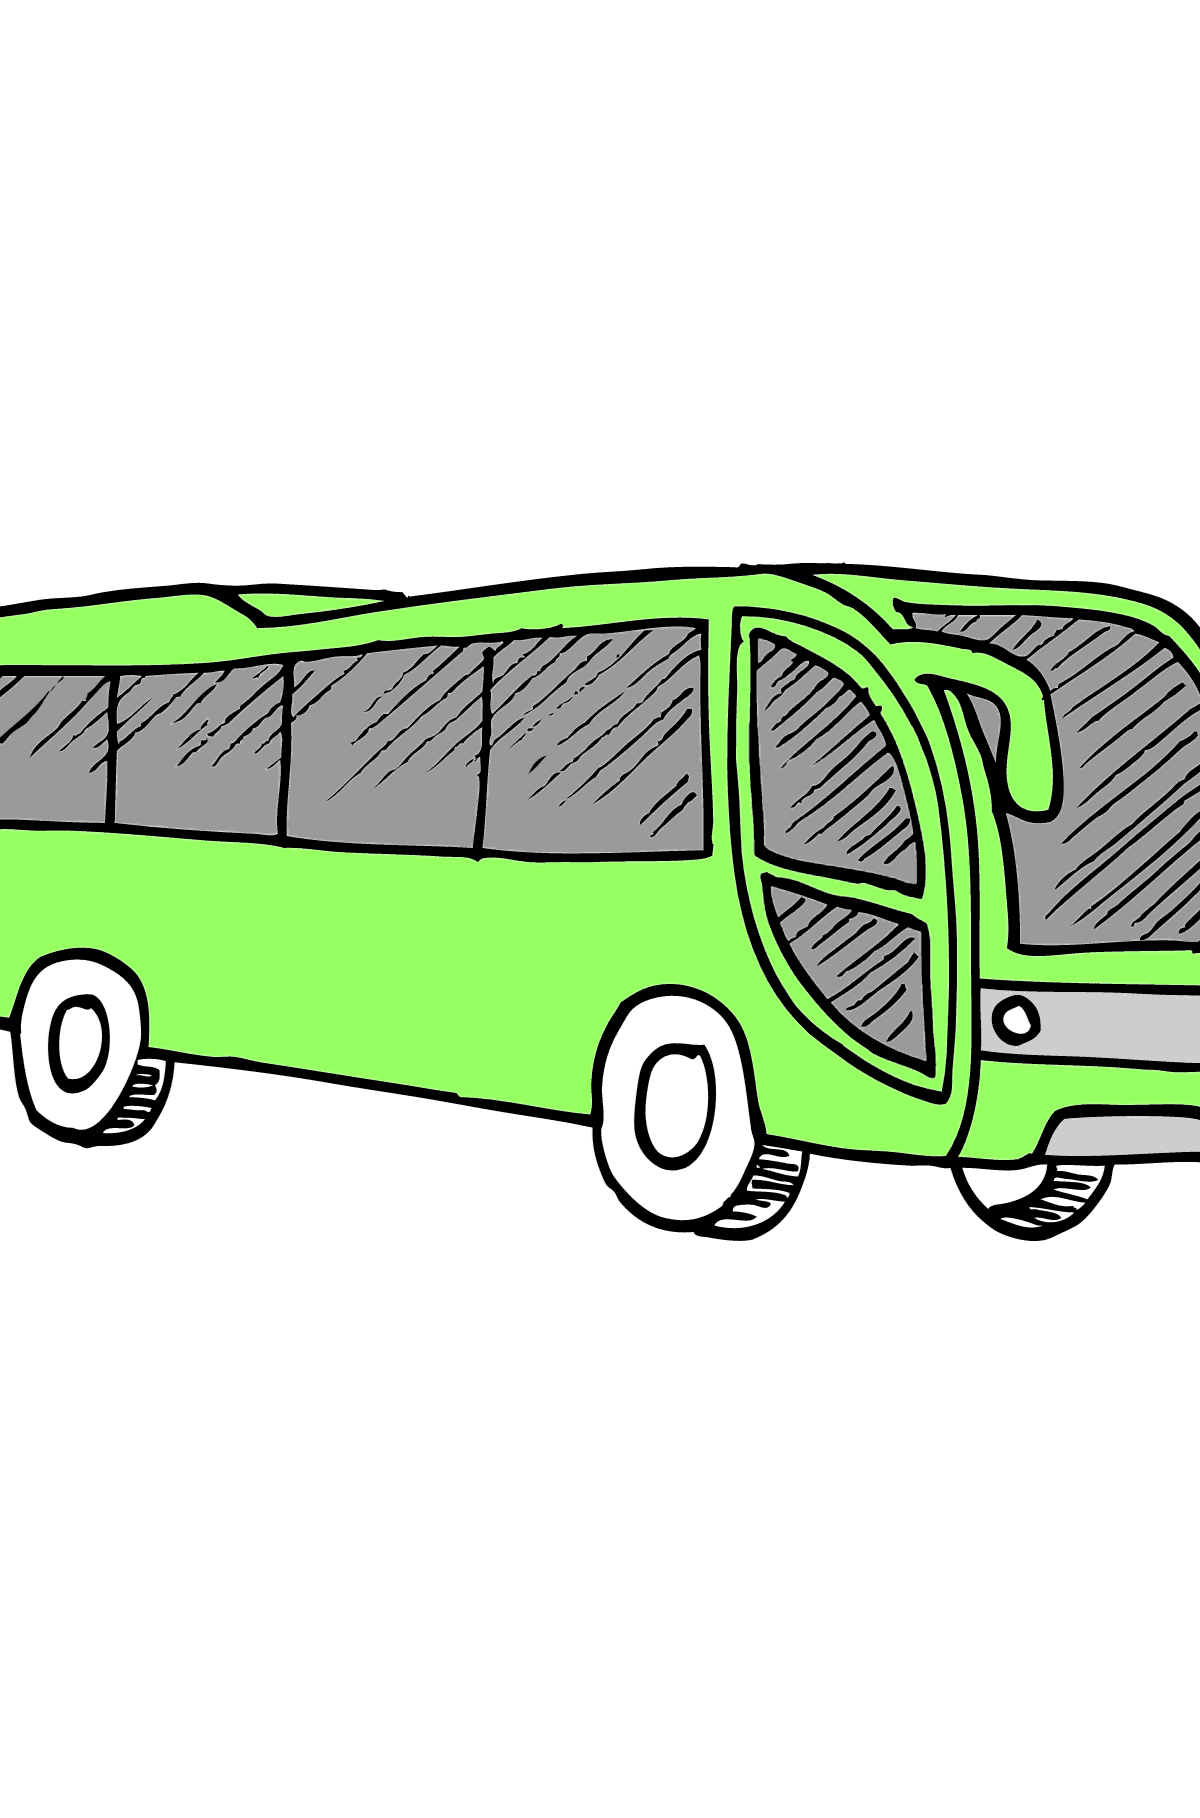 Coloring Page - A Bus is Having Rest - Coloring Pages for Kids